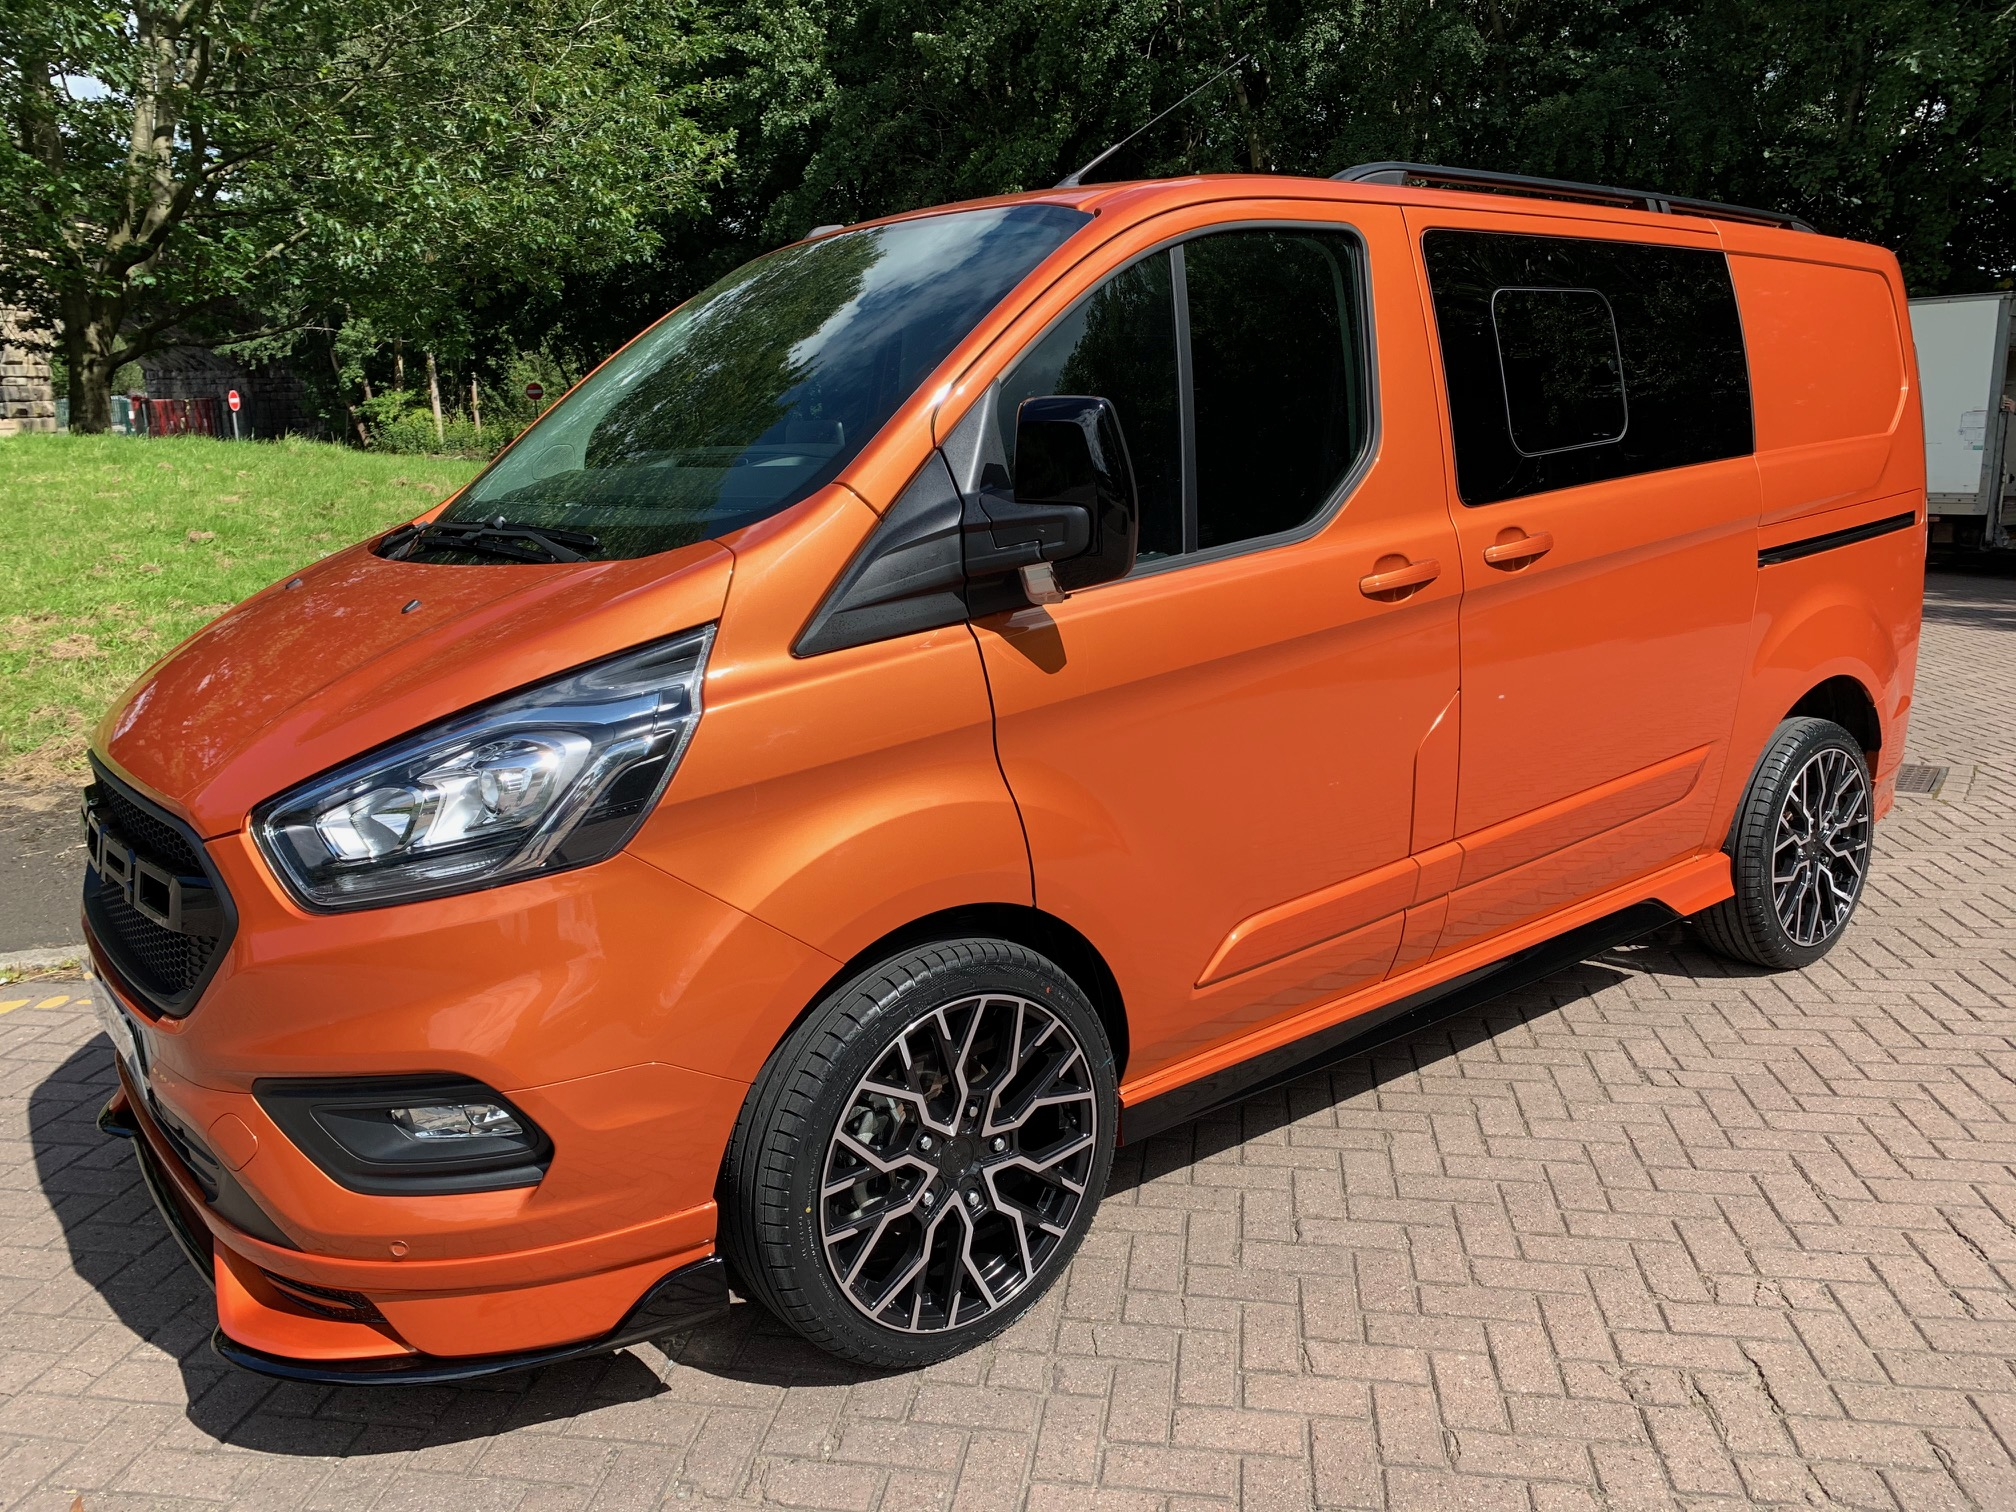 IMG_5265.jpg - Inferno X 320 L1 Double Cab In Van 2.0tdci 185 Limited Auto